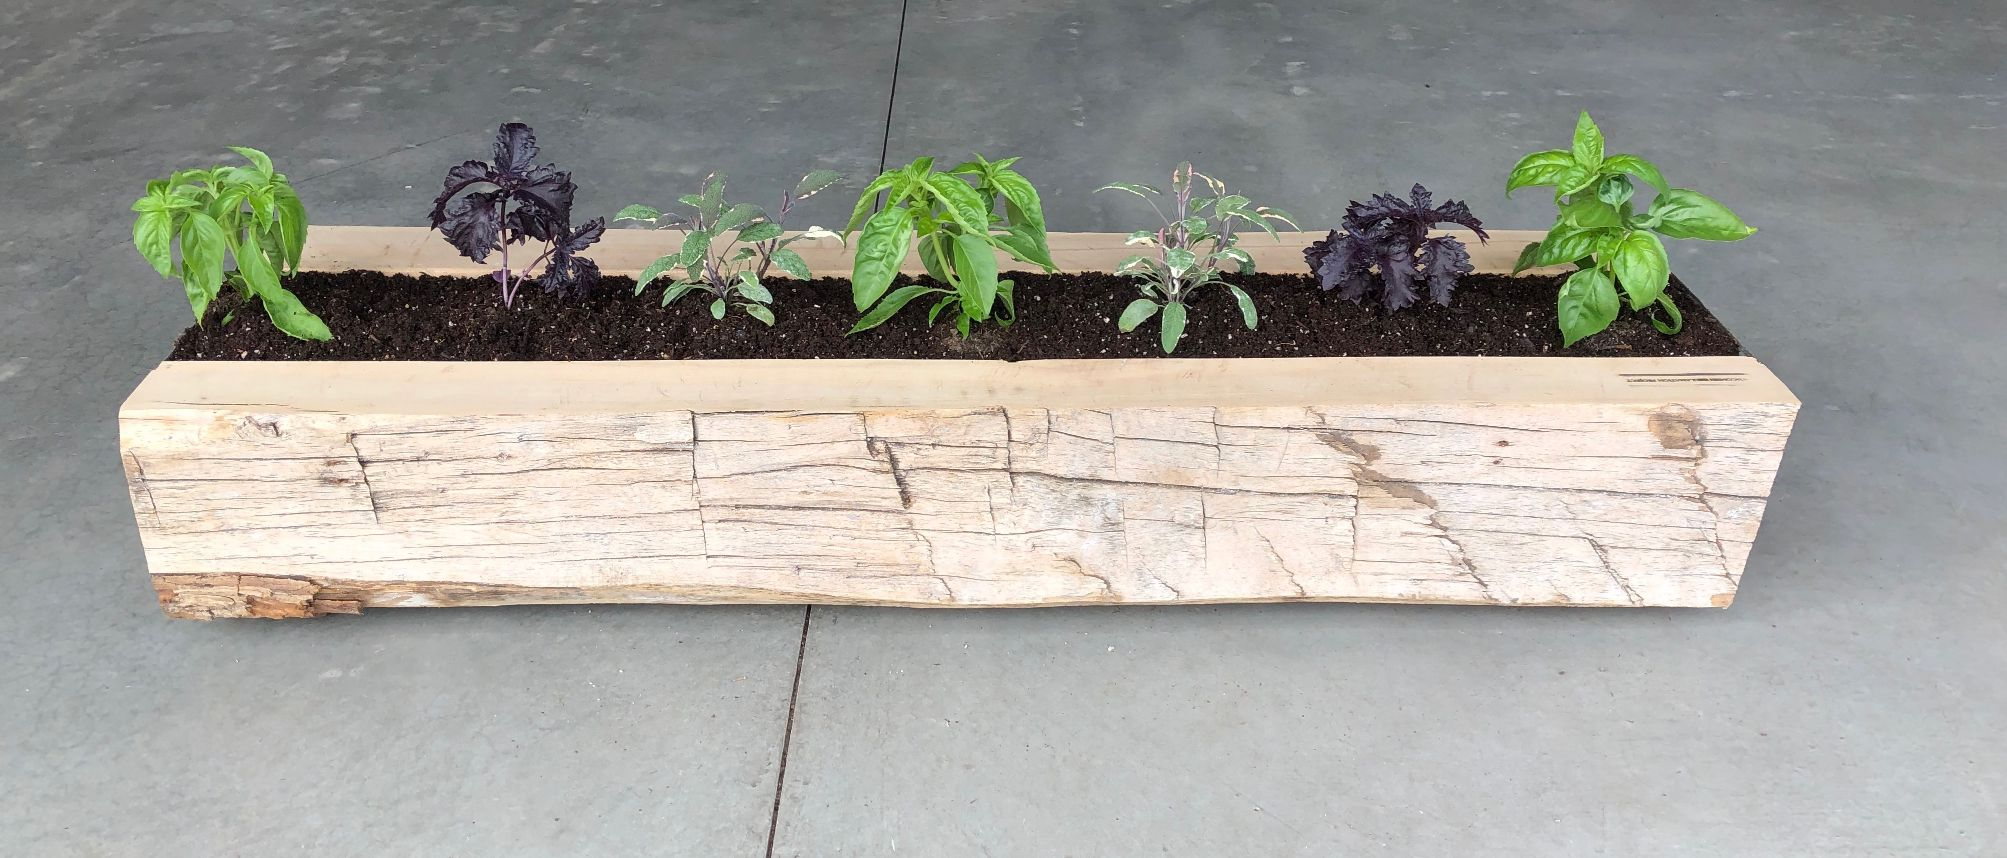 Reclaimed Wood Garden and Plants